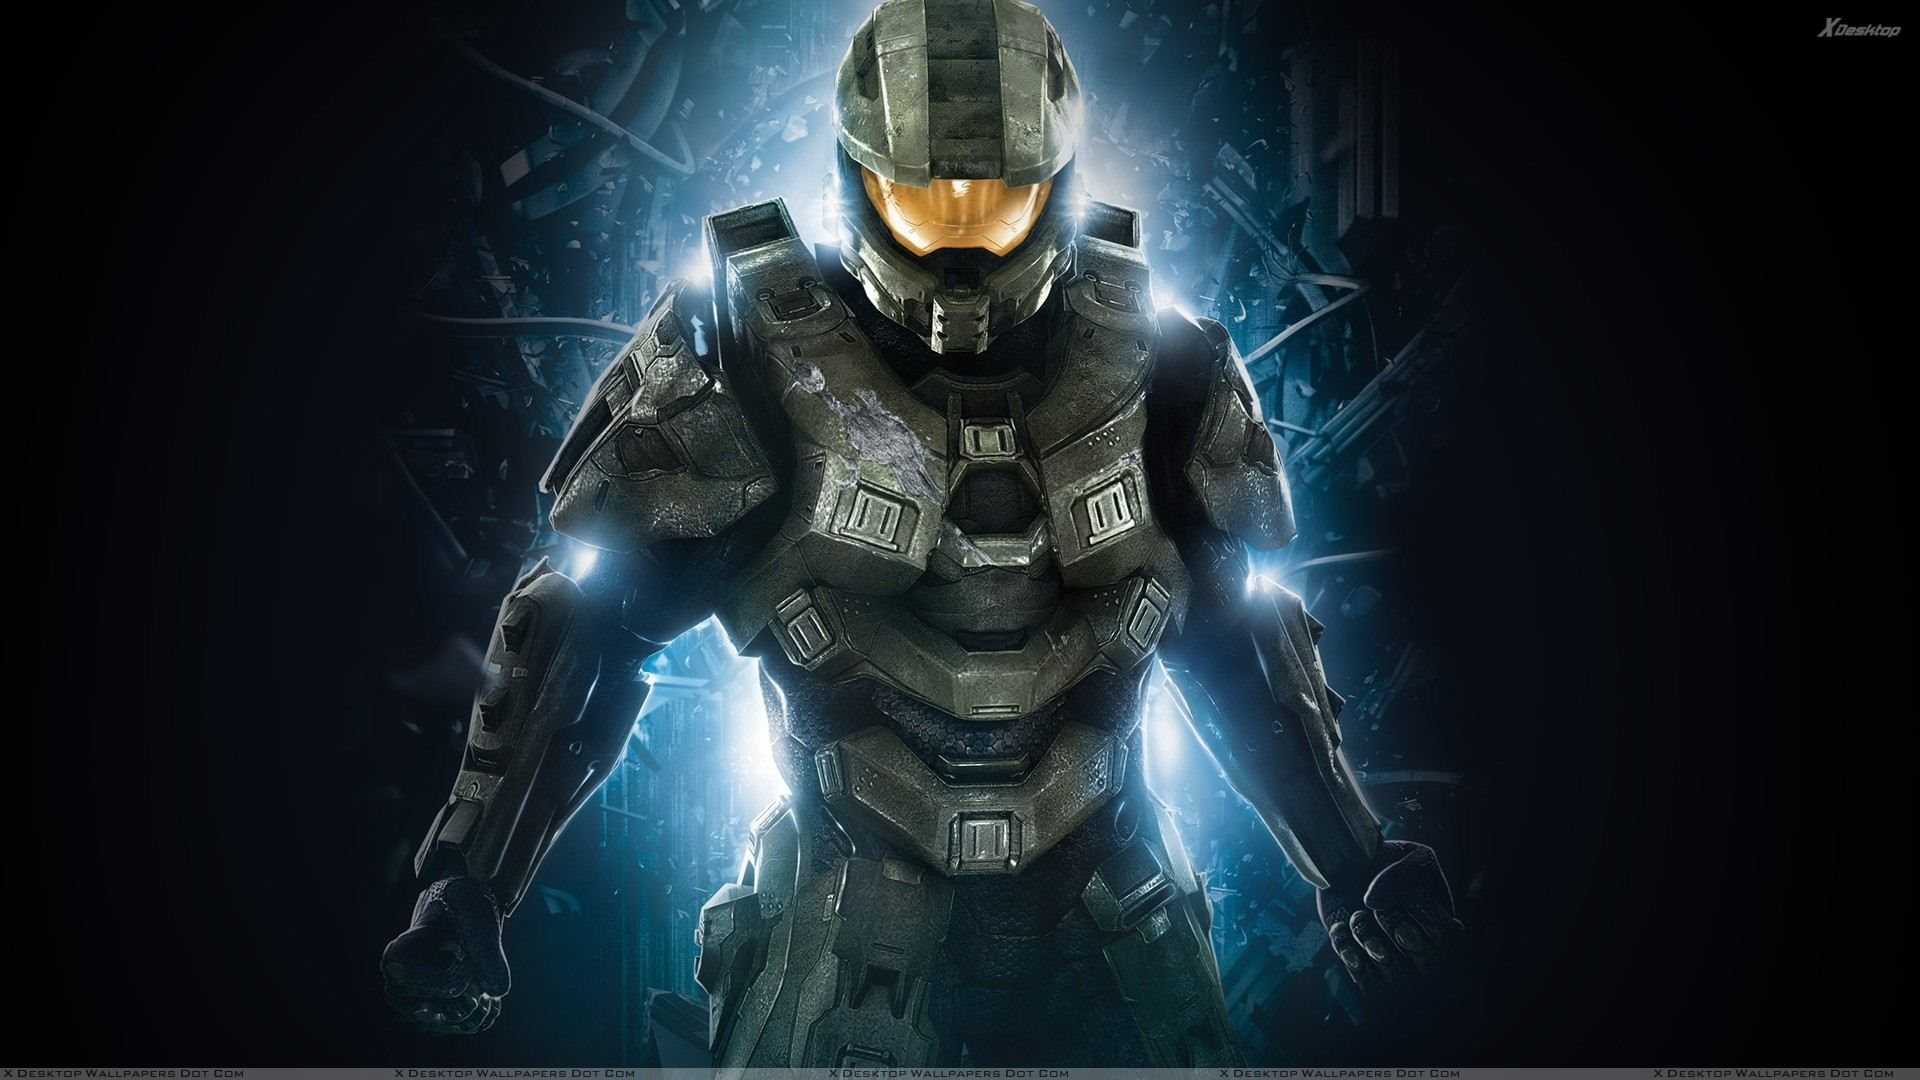 Spartan 117 makes his brave return in Halo 4